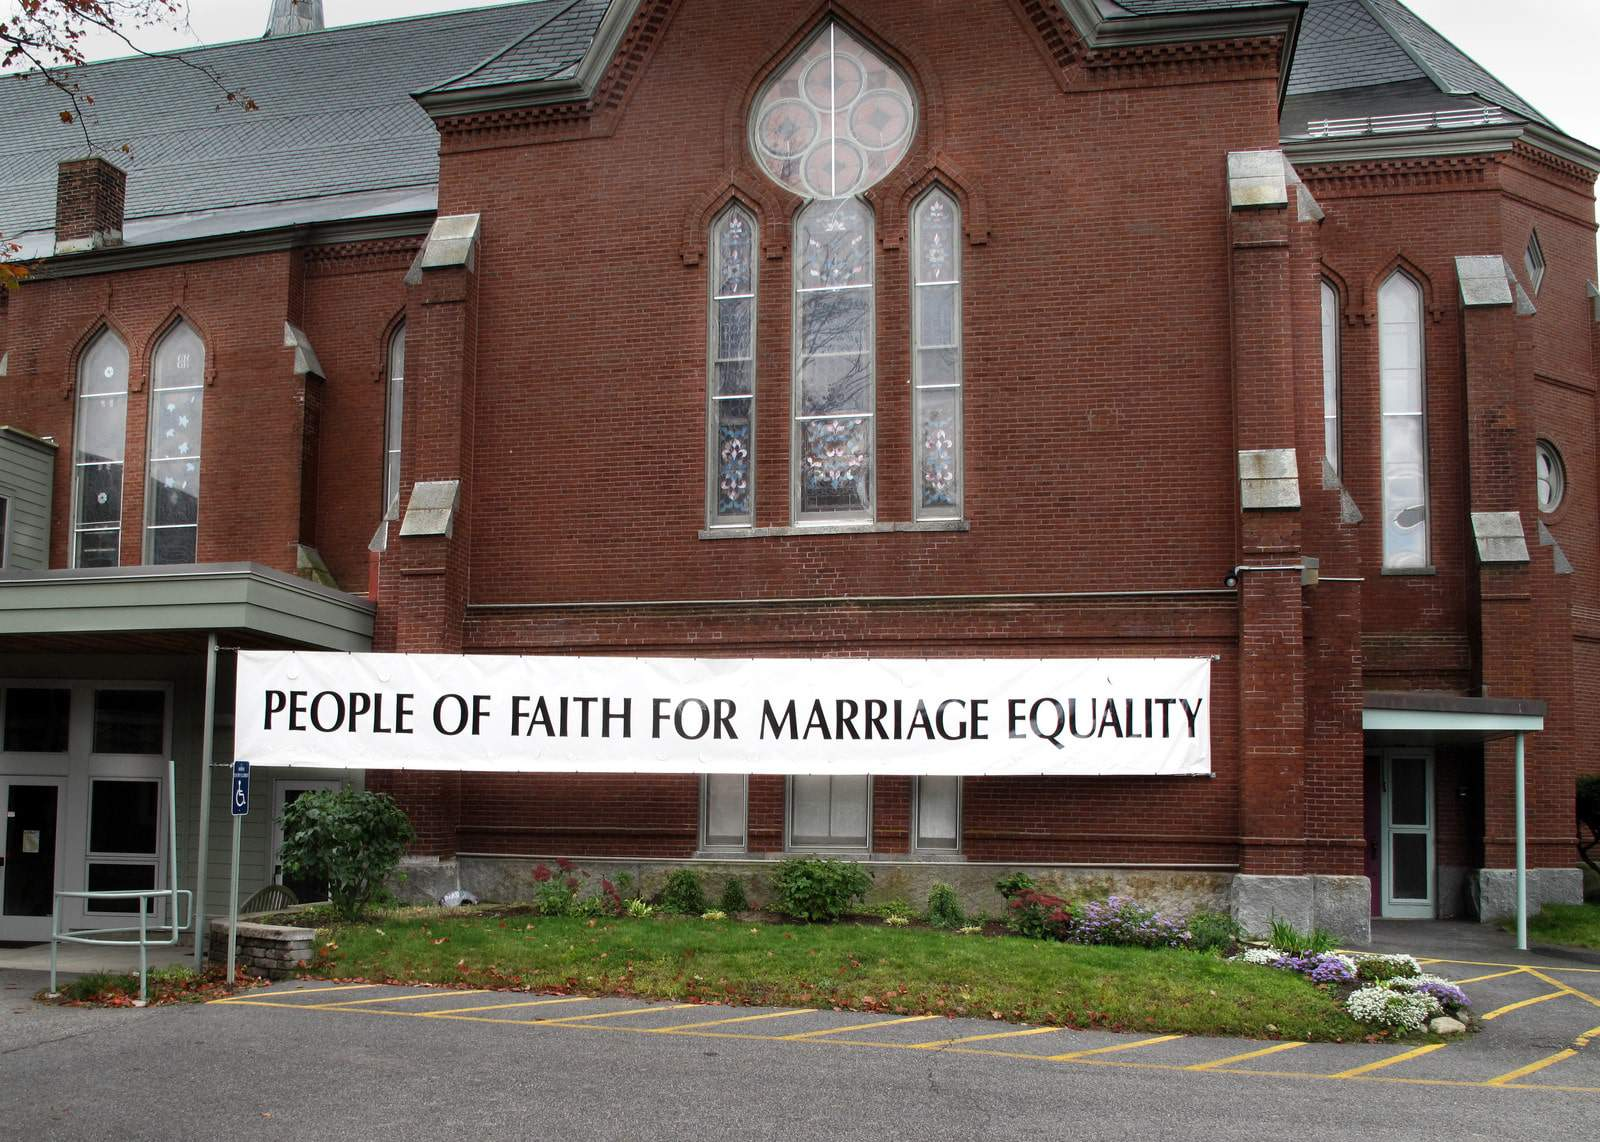 Rich Vaughn Blog: People of Faith for Marriage Equality